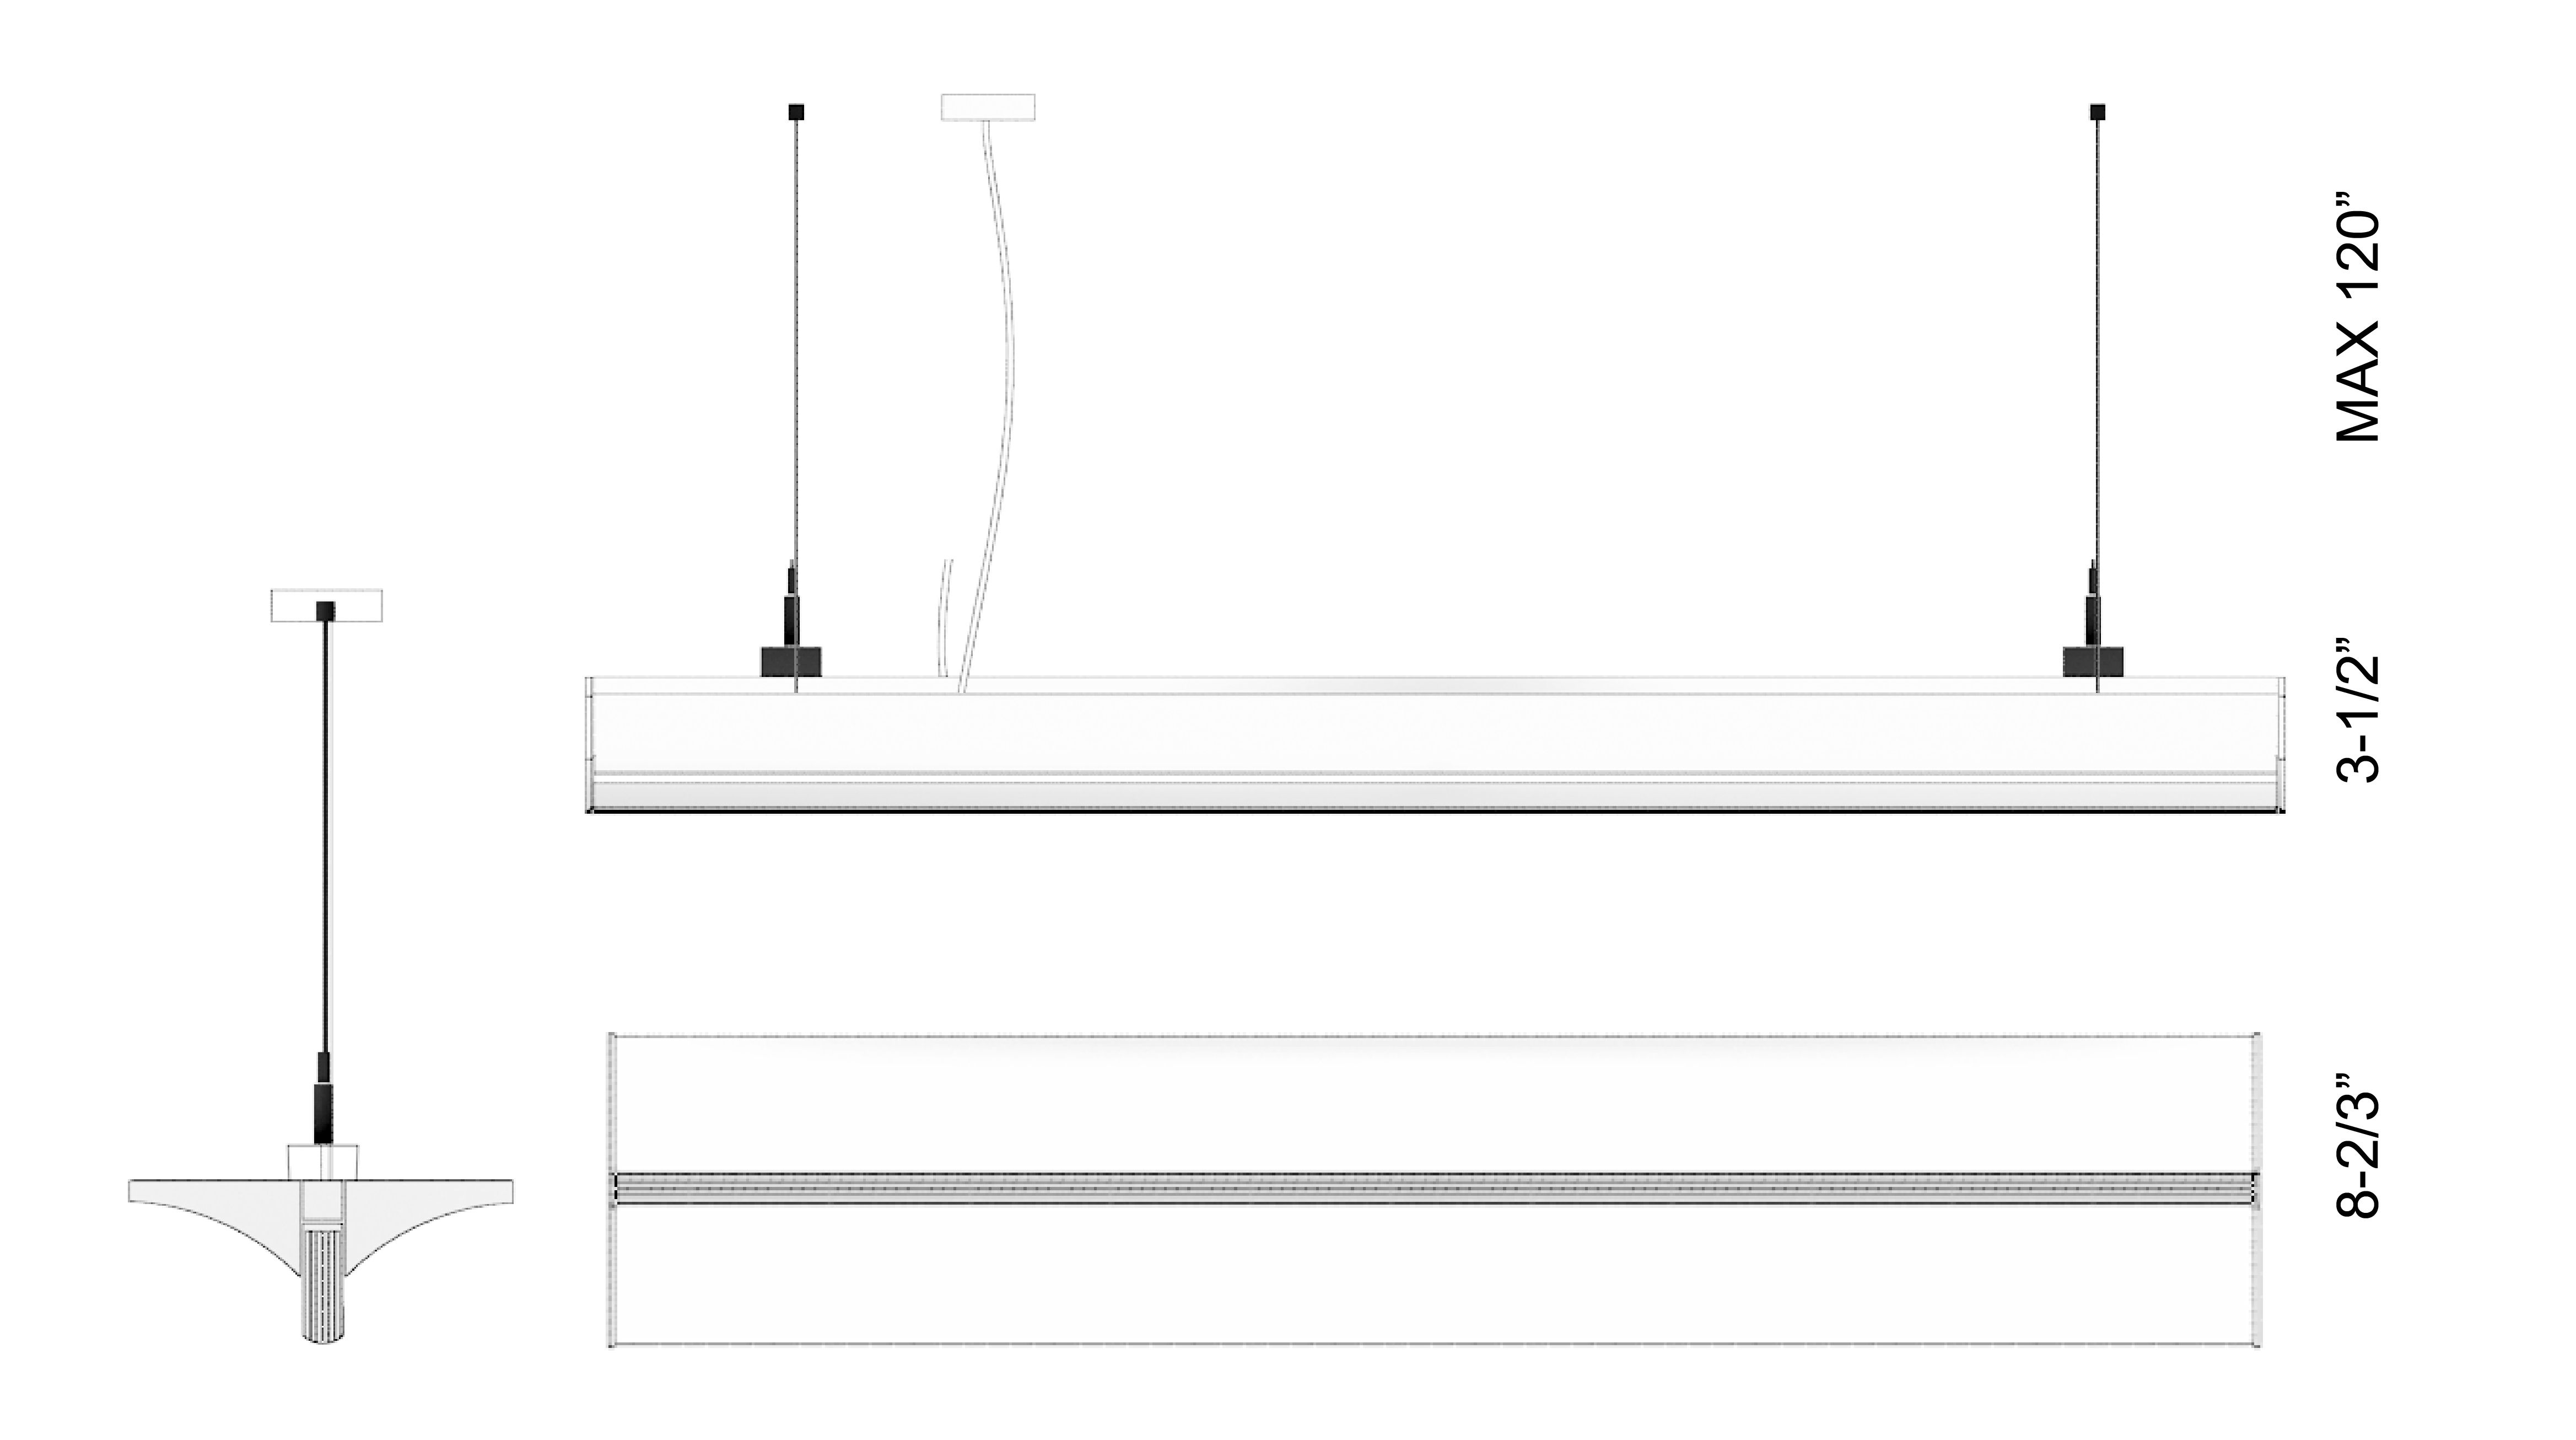 Alcon Lighting 12126 Tee Beam Architectural Led Linear Suspended Wiring Diagram 120 Volt Light Fixture Pendant Mount Indirect Up